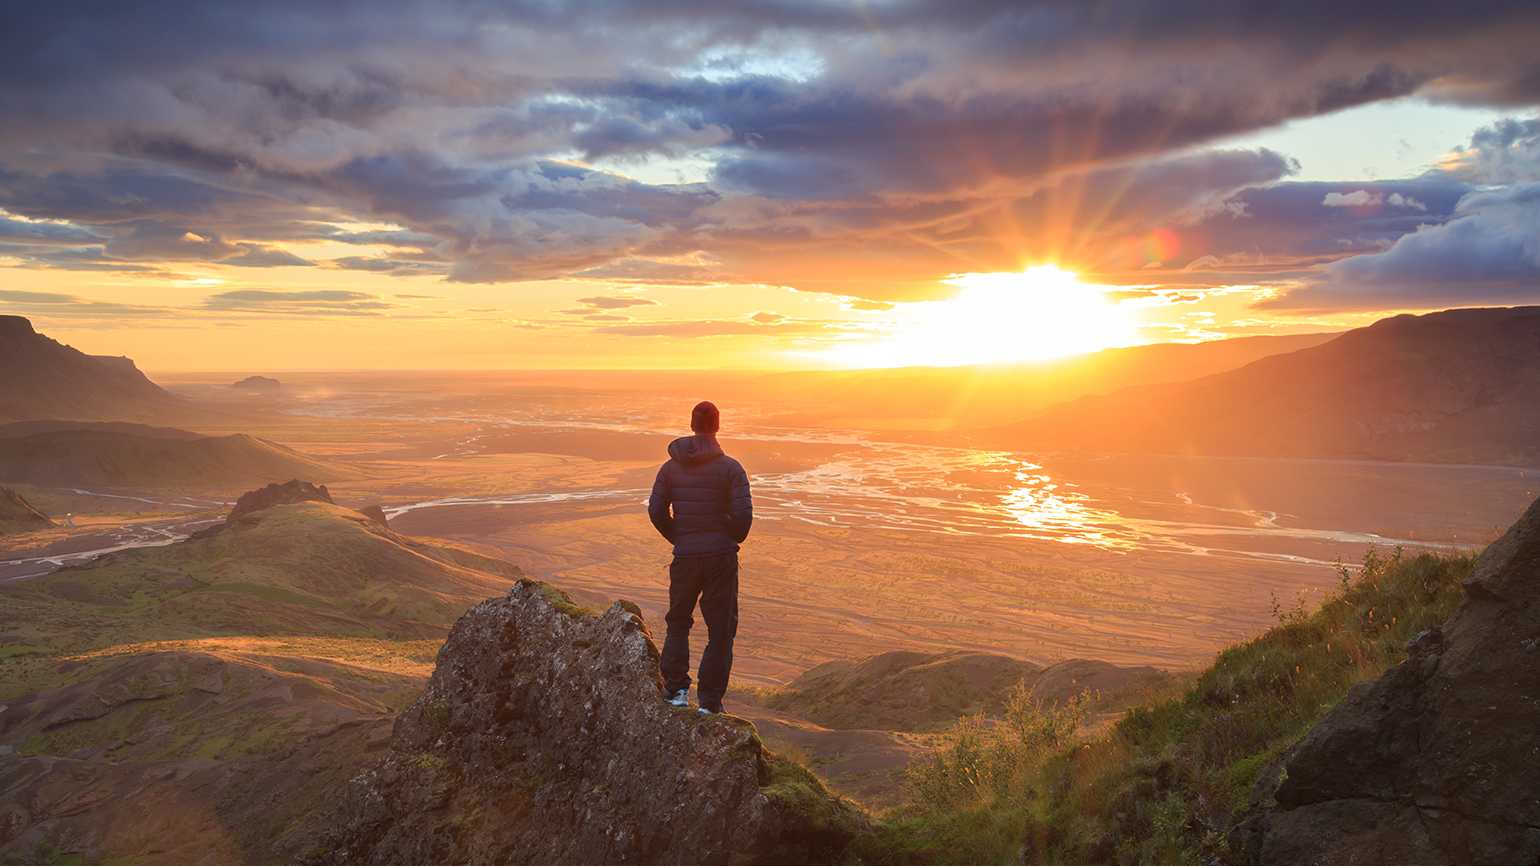 A hiker gazes at a mountain sunrise